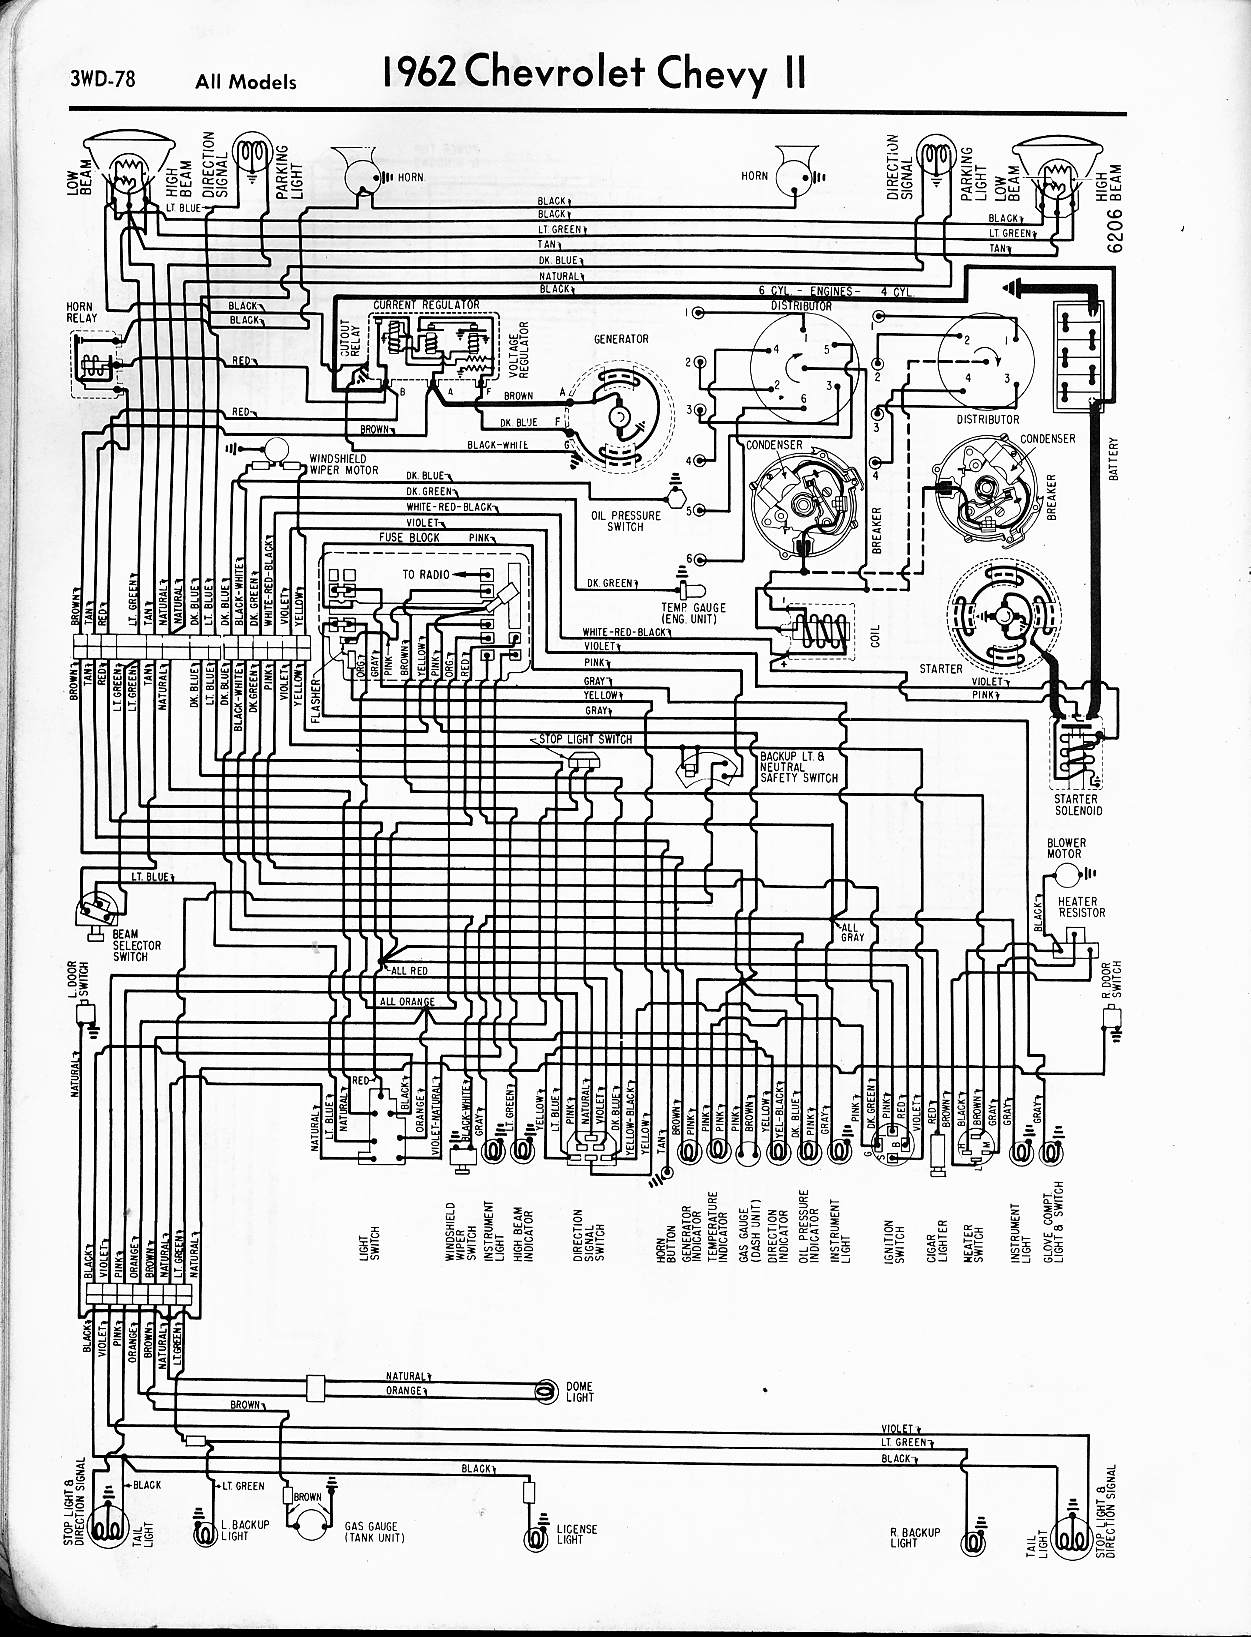 MWireChev62_3WD 078 57 65 chevy wiring diagrams 1962 impala wiring diagram at webbmarketing.co